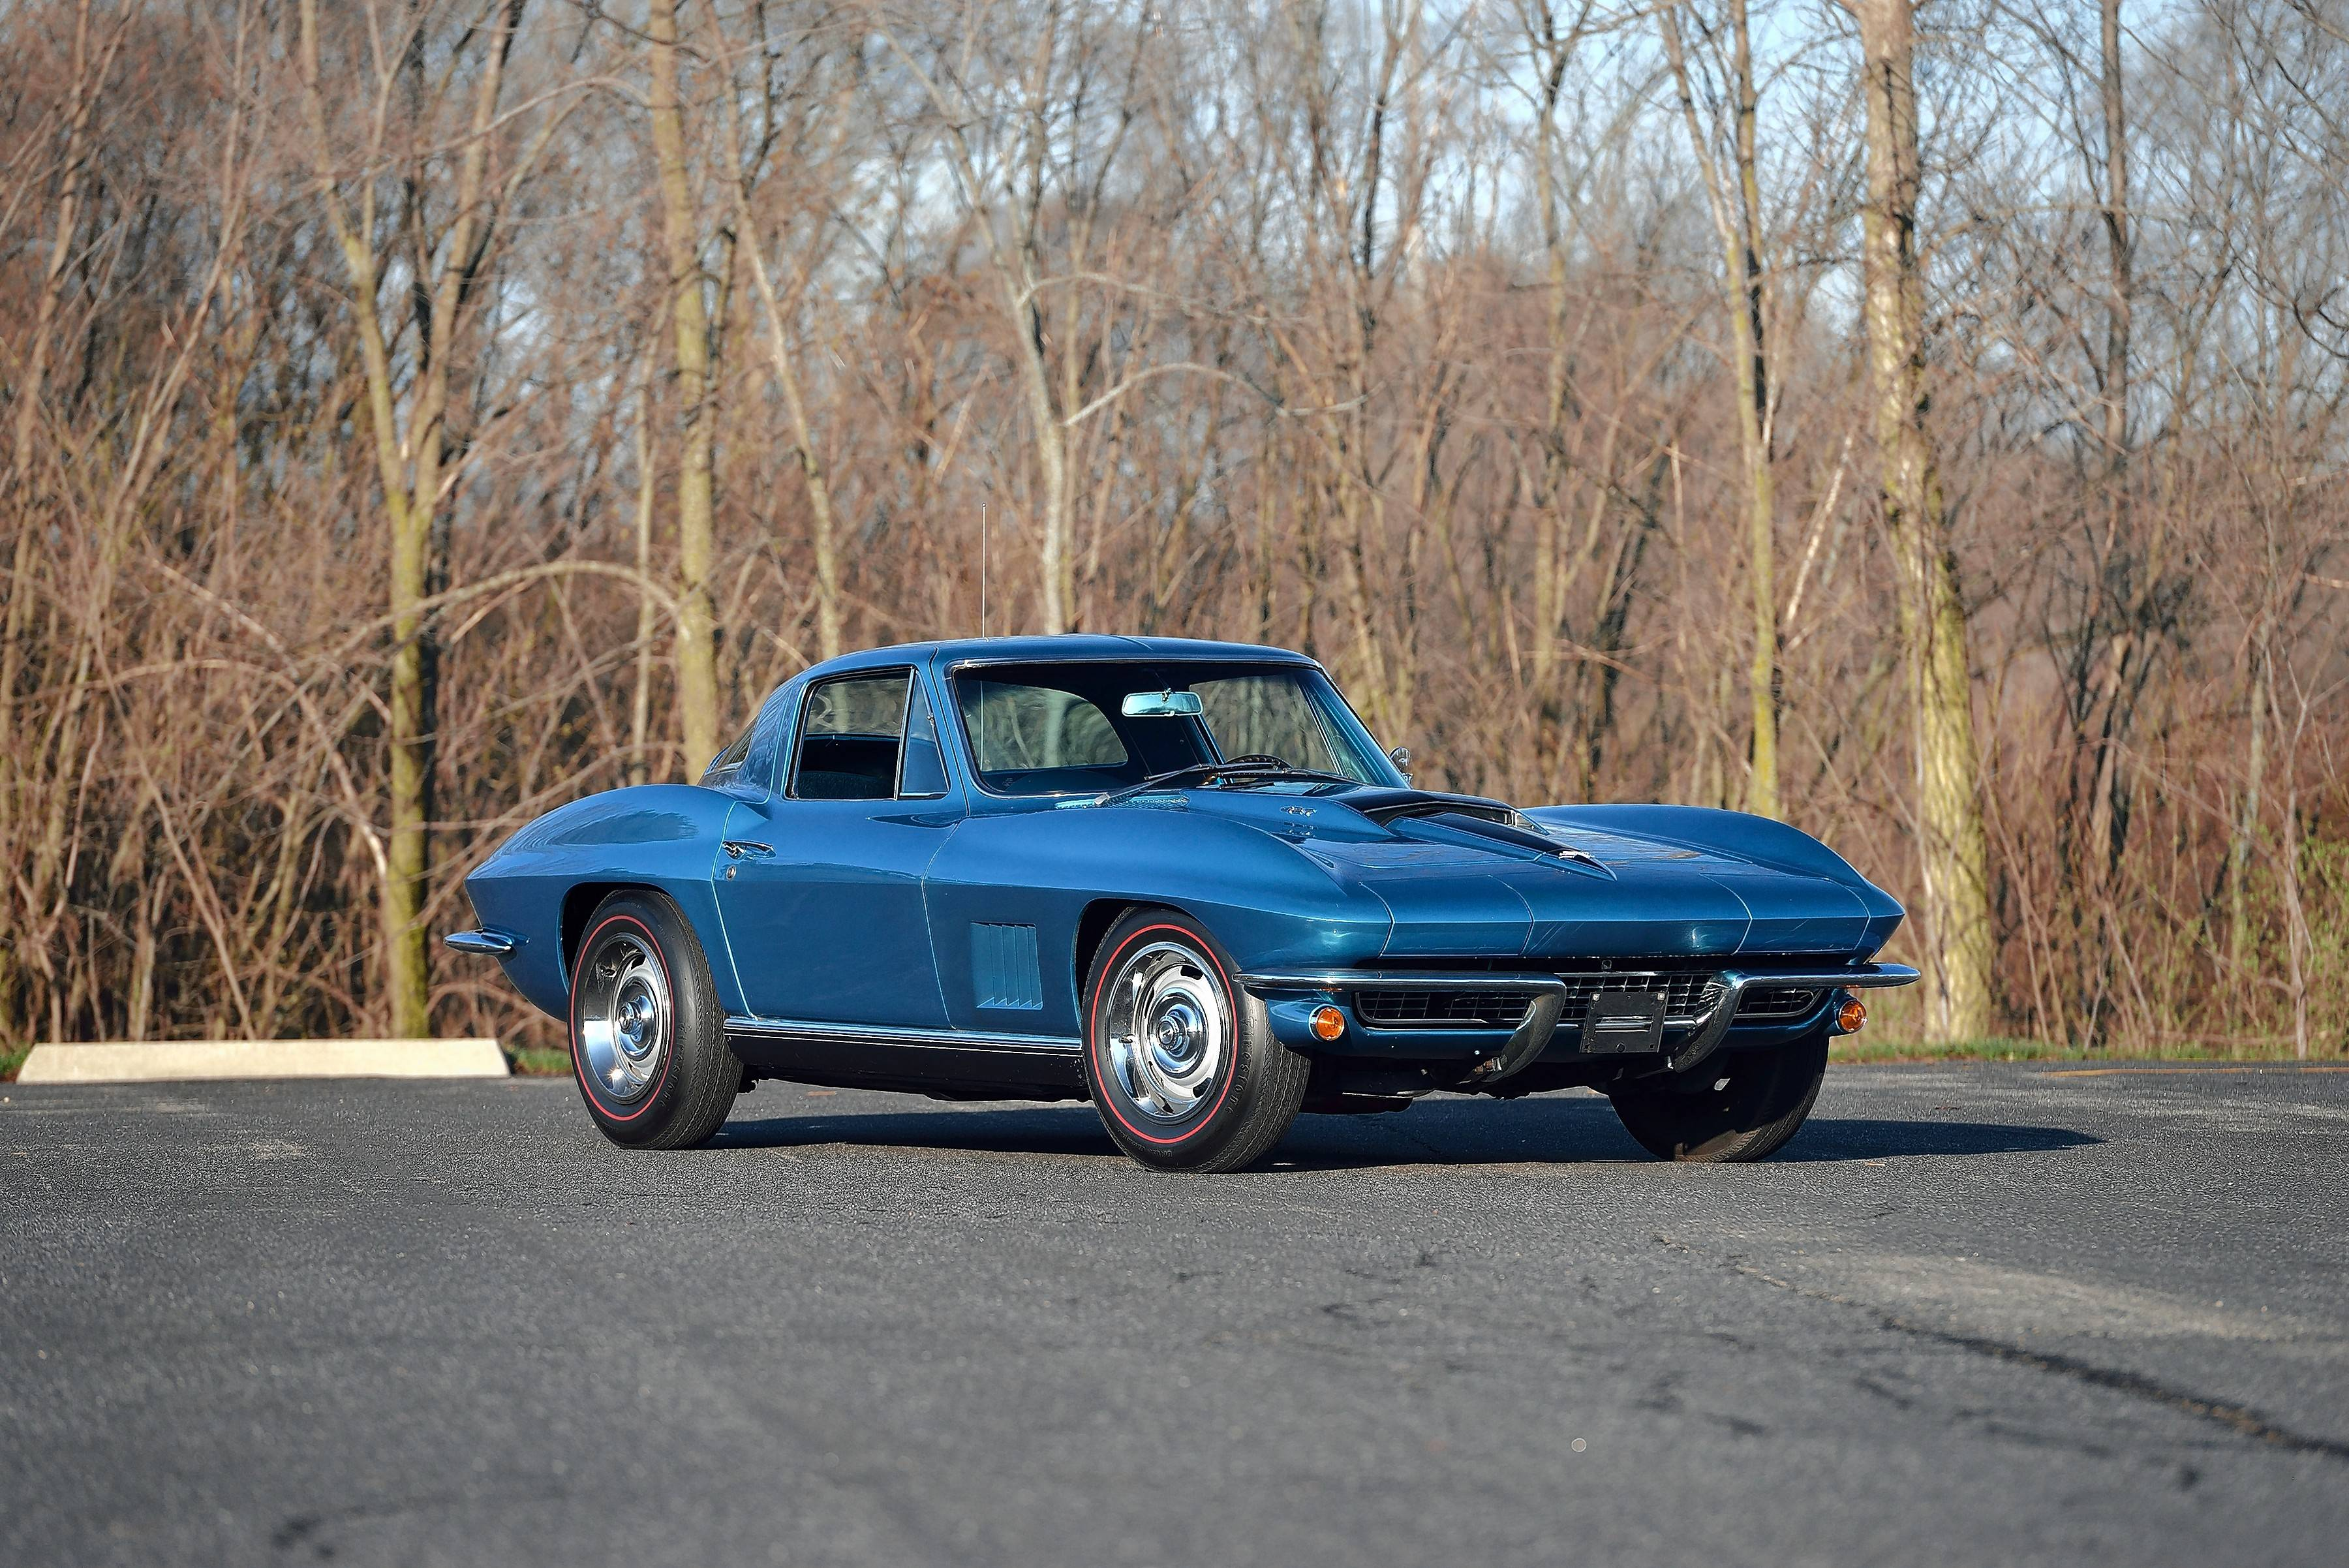 Matt Litavsky has decided it is time to part with his father's 1967 Corvette.